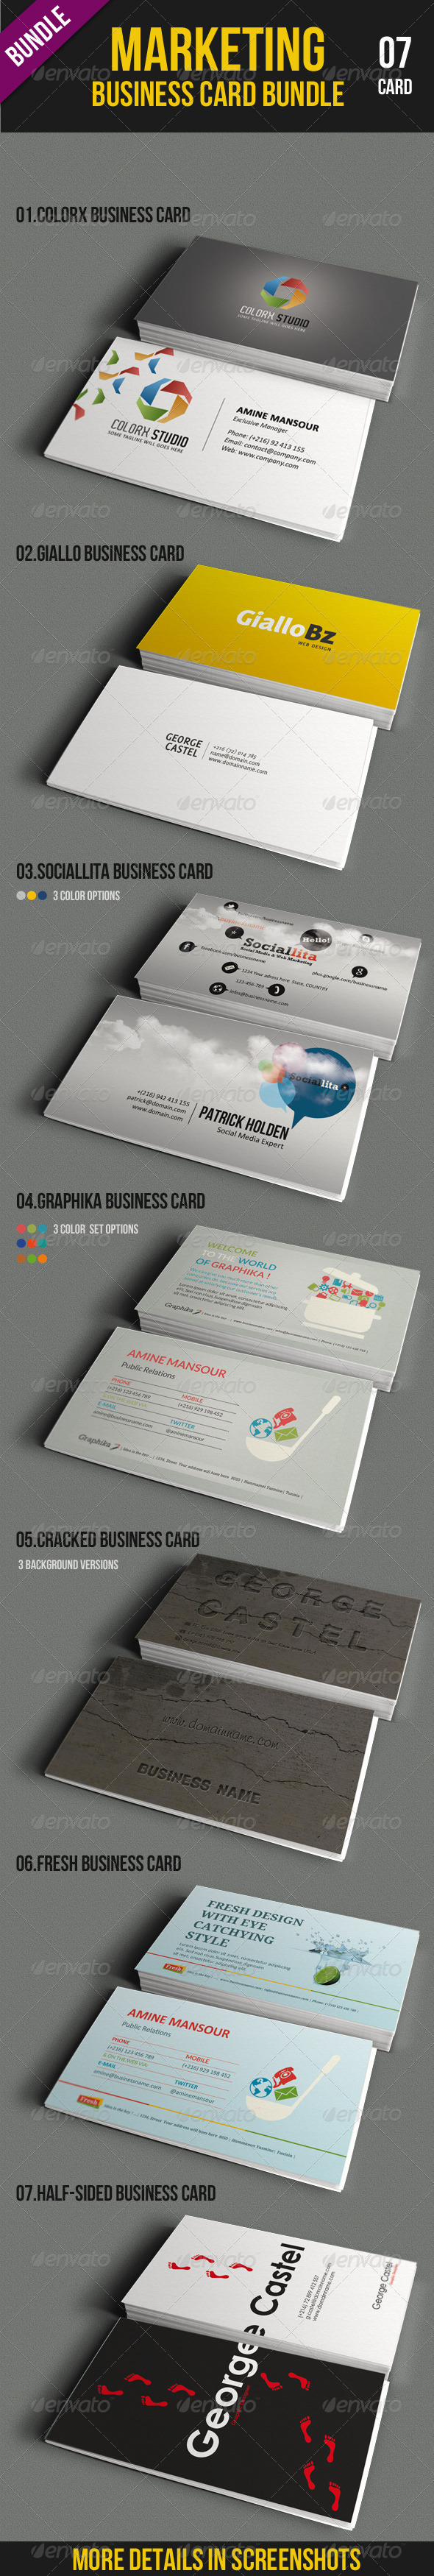 Marketing Business Card Bundle - Corporate Business Cards